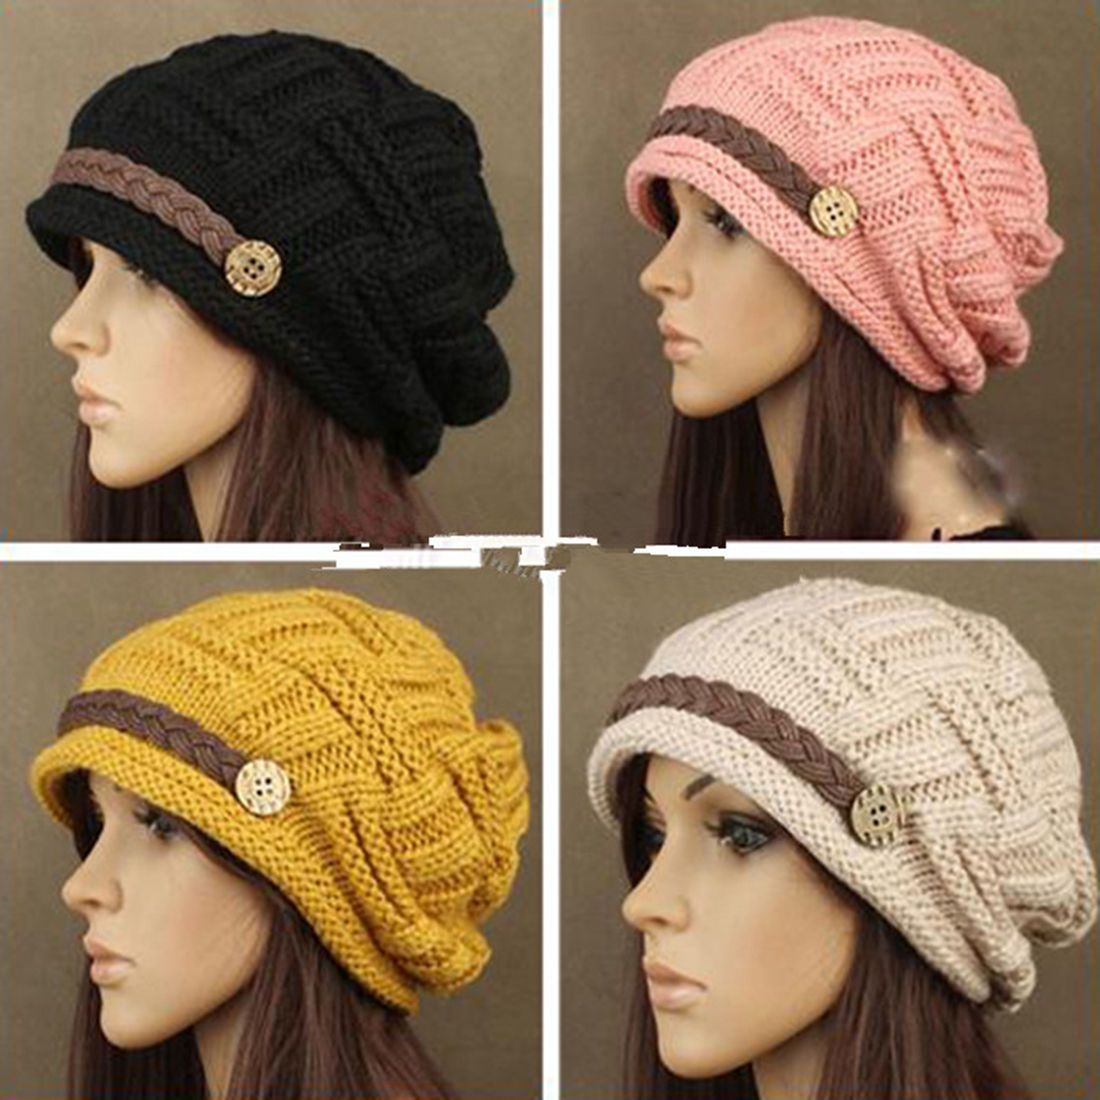 d2baed5b299 7.95AUD - Women Knitted Winter Warm Ski Slouch Oversized Beanie Cap Hat  Black Wool Girls  ebay  Fashion